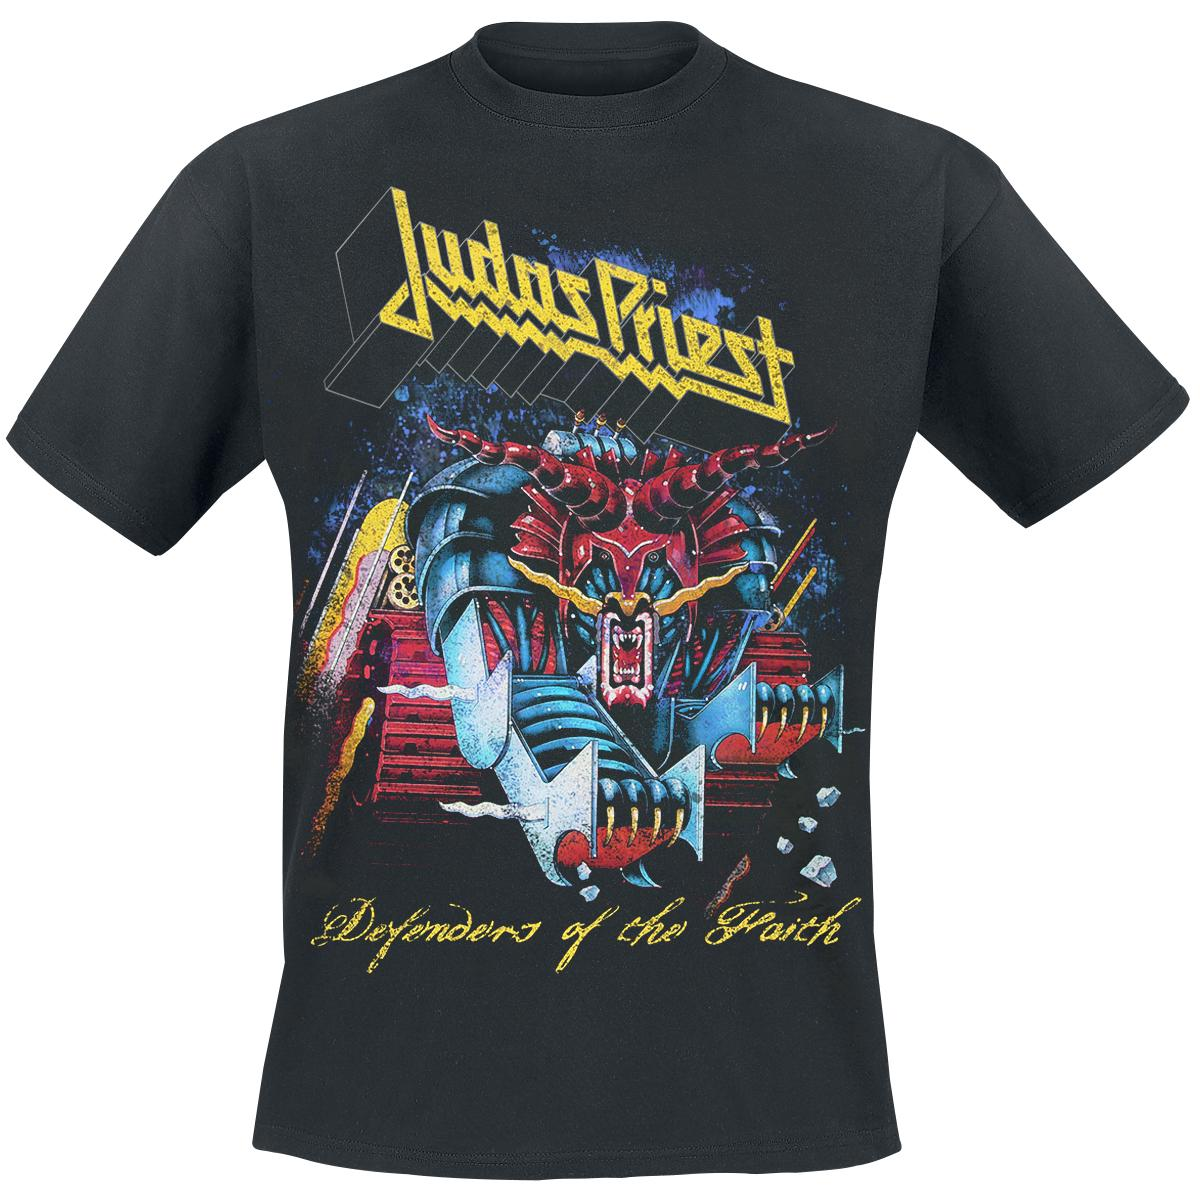 01-judas-priest-defenders